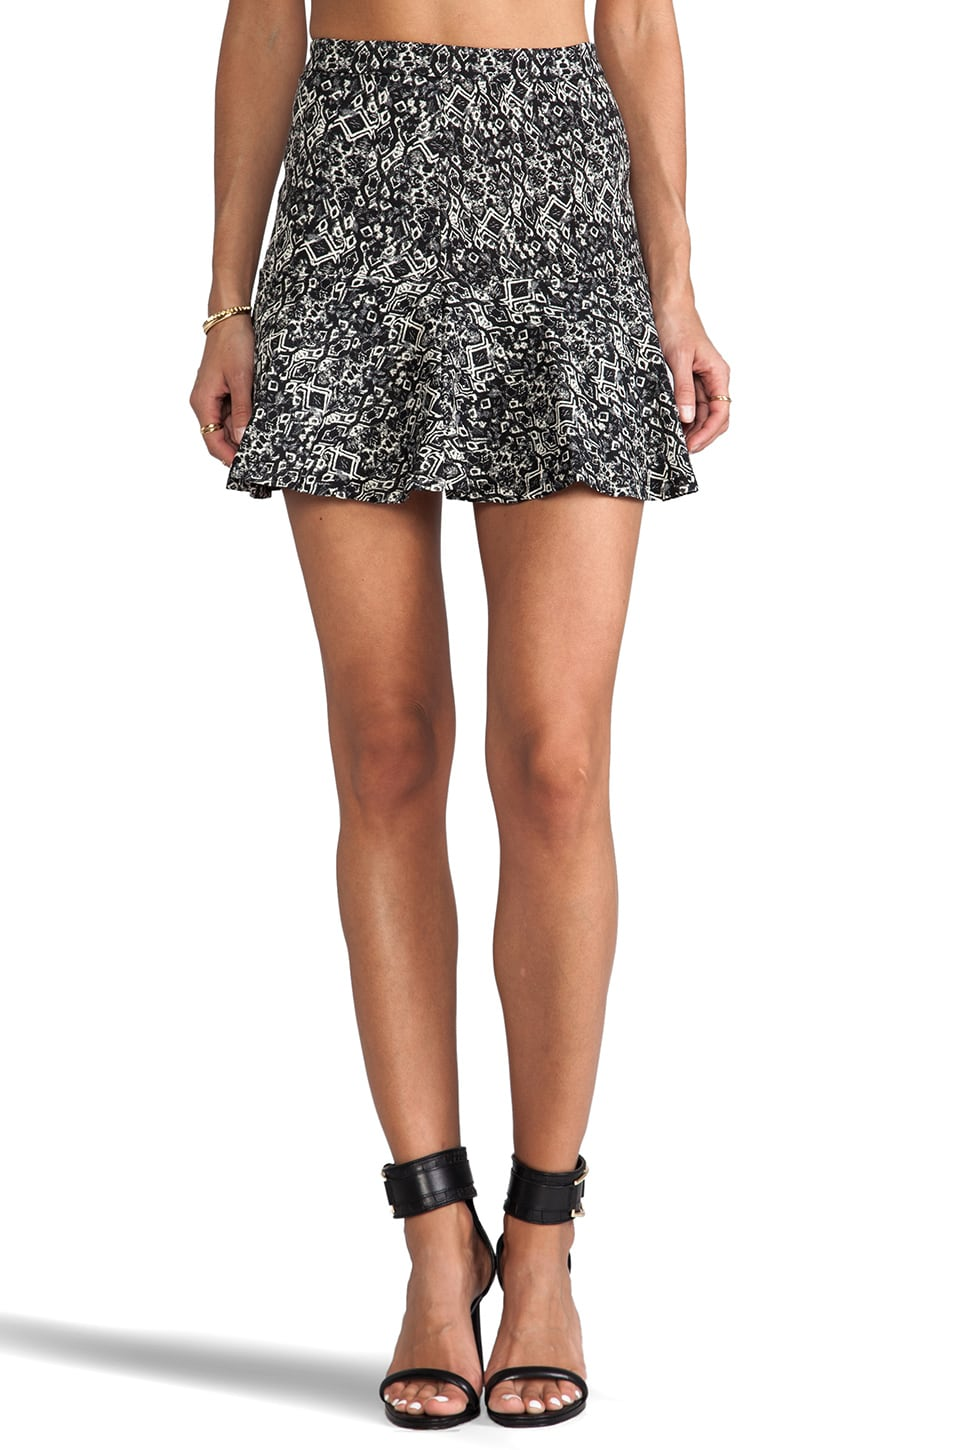 Parker Mckenna Skirt in Black/Cream